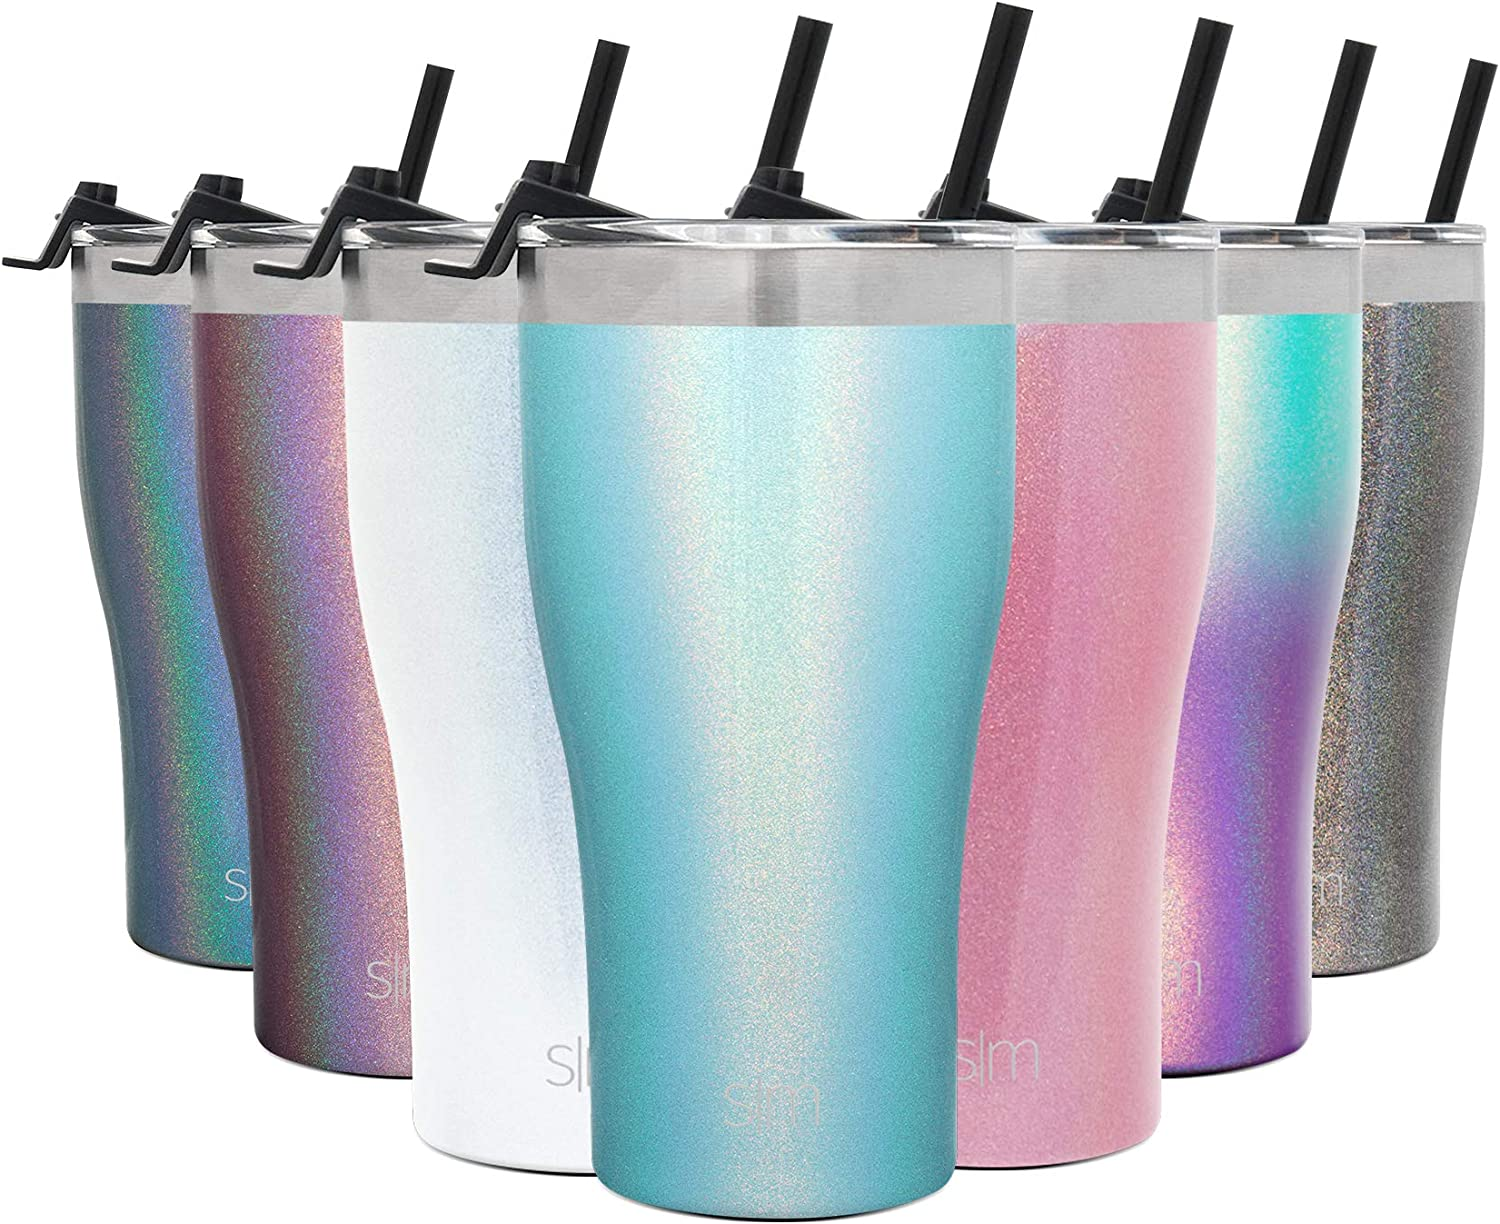 Simple Modern 22oz Slim Cruiser Tumbler with Straw & Closing Lid Travel Mug - Gift Double Wall Vacuum Insulated - 18/8 Stainless Steel Water Bottle Shimmer: Aqua Aura